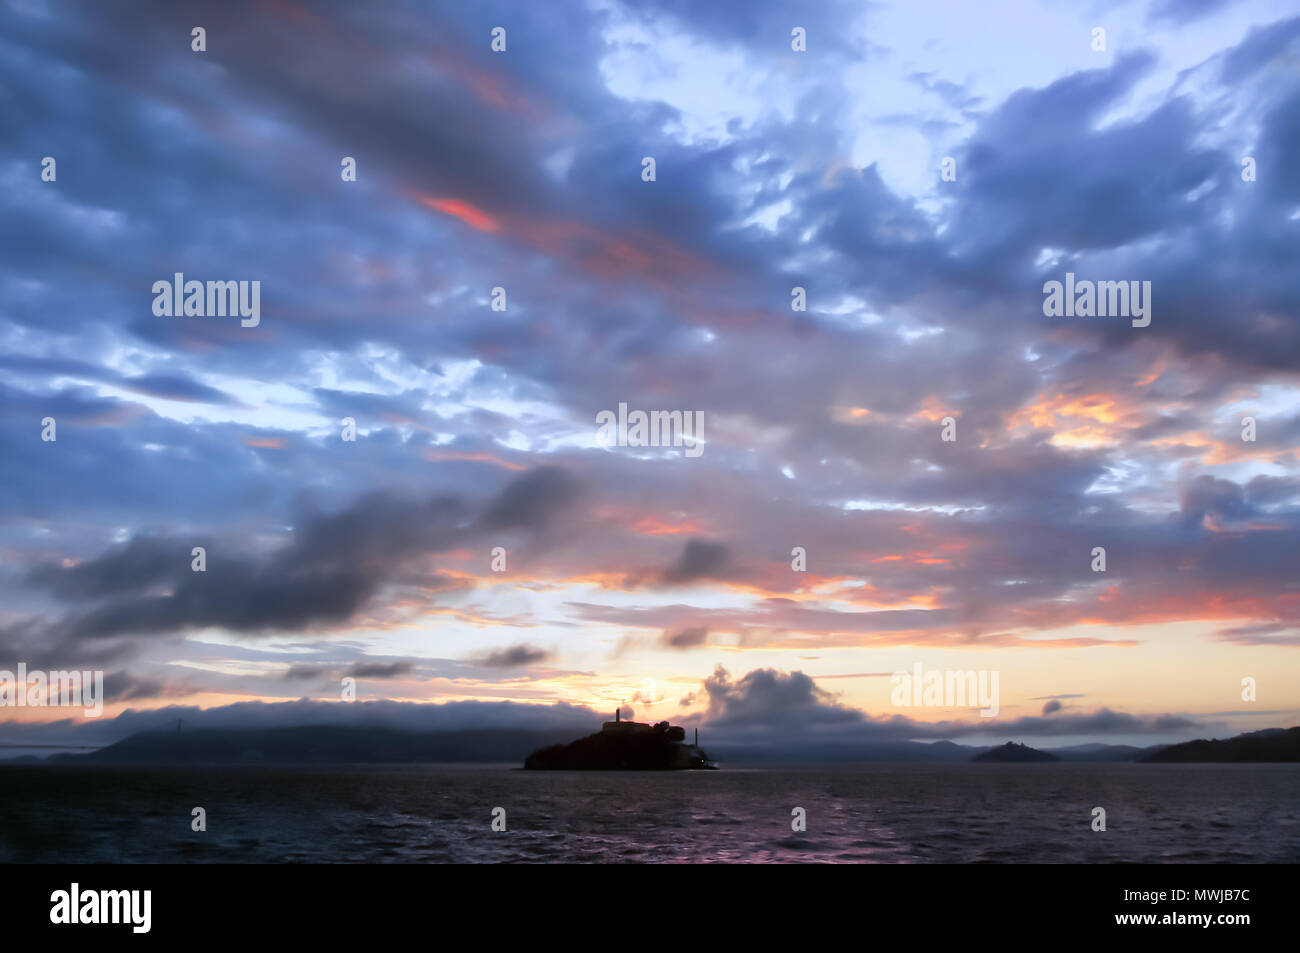 Alcatraz Island Sunset as seen from a Cruise Boat. - Stock Image